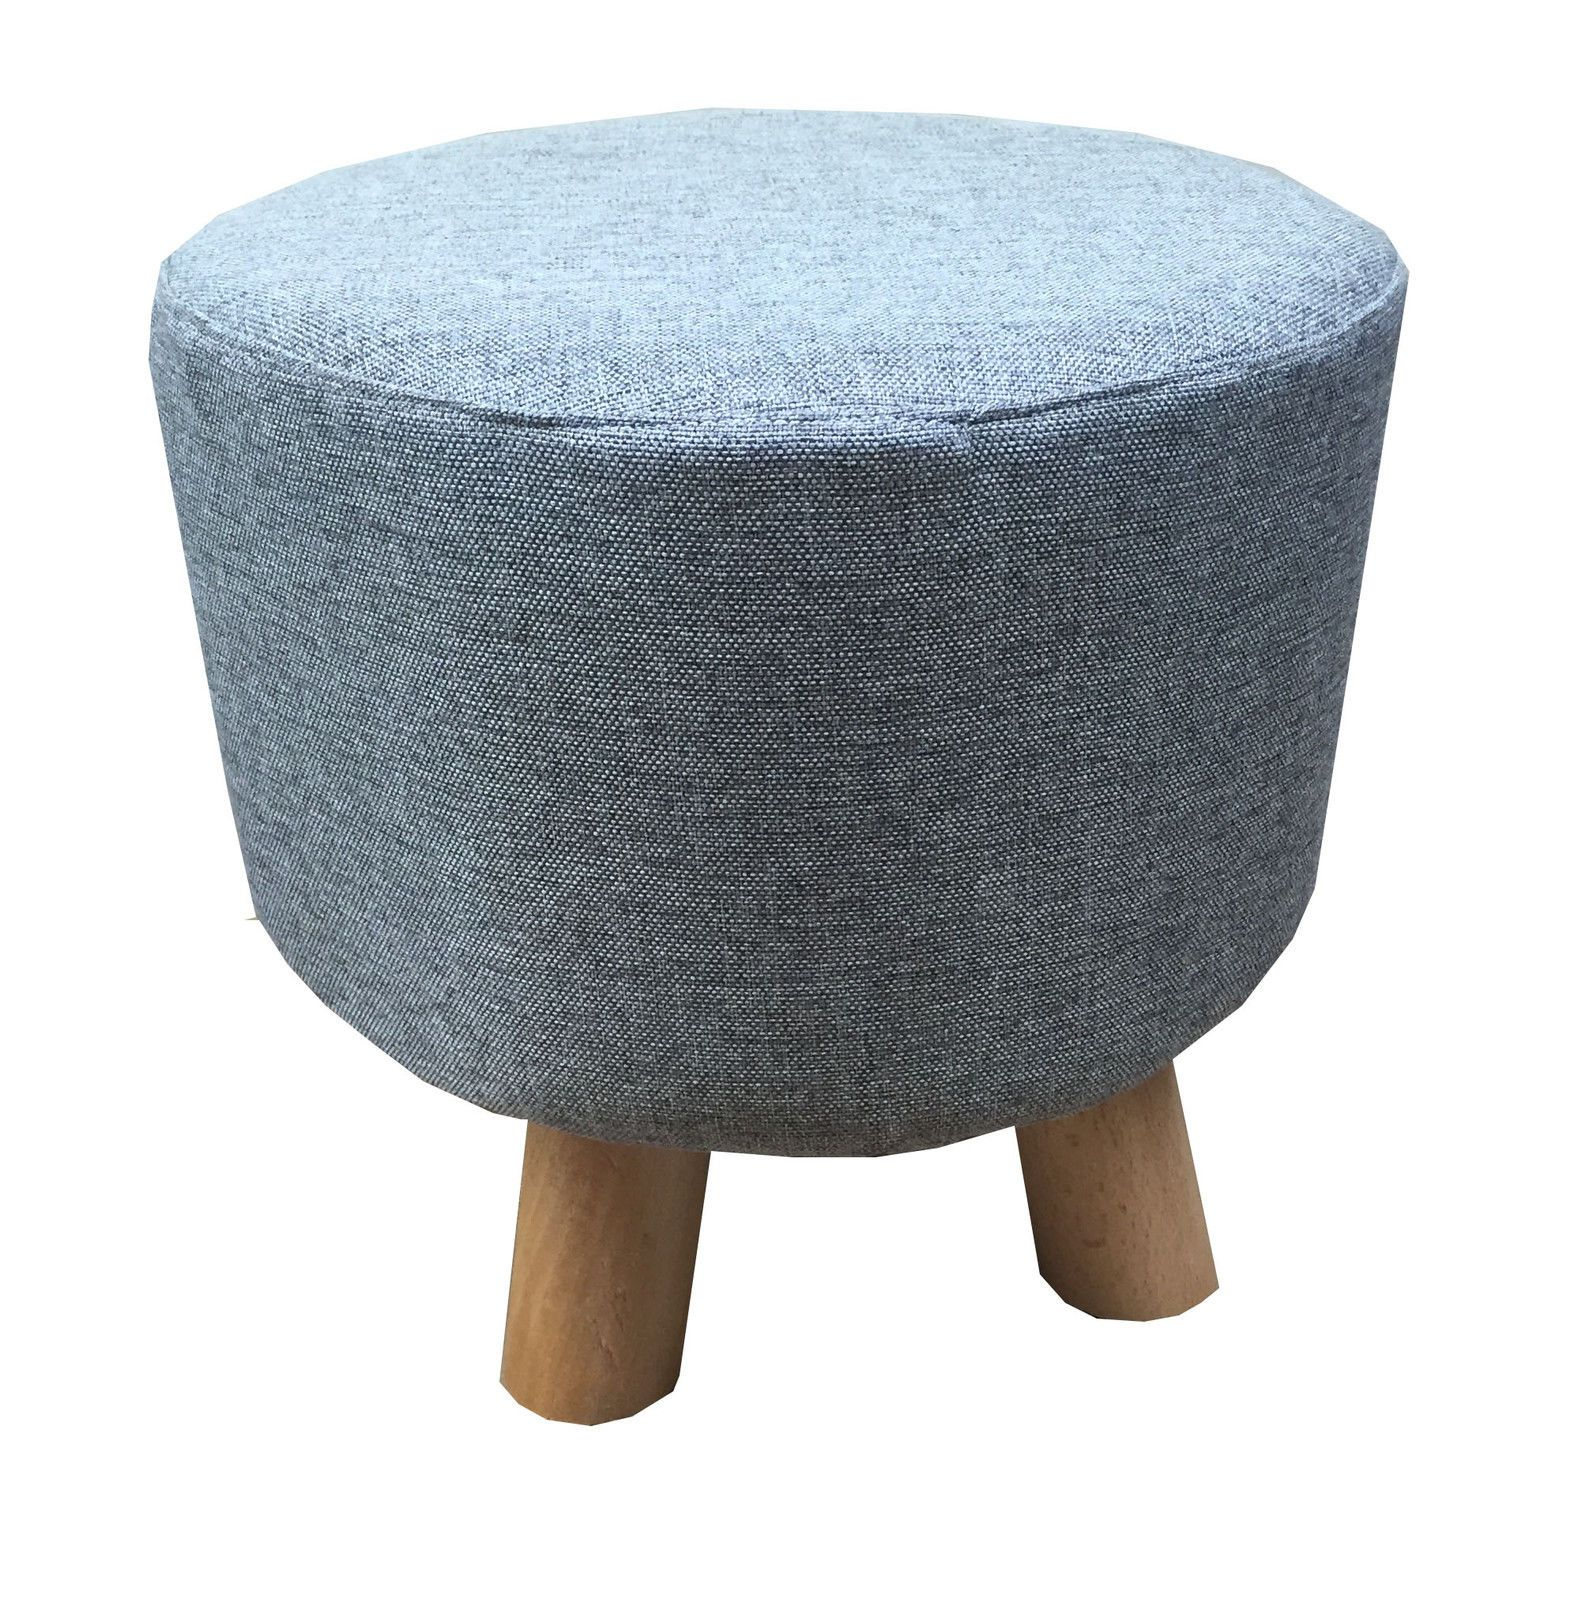 Details About Oak Upholstered Round Footstool Ottoman Pouffe Padded Stool Solid Wooden Legs Uk Hocker Ottomane Gepolsterter Hocker Stuhle